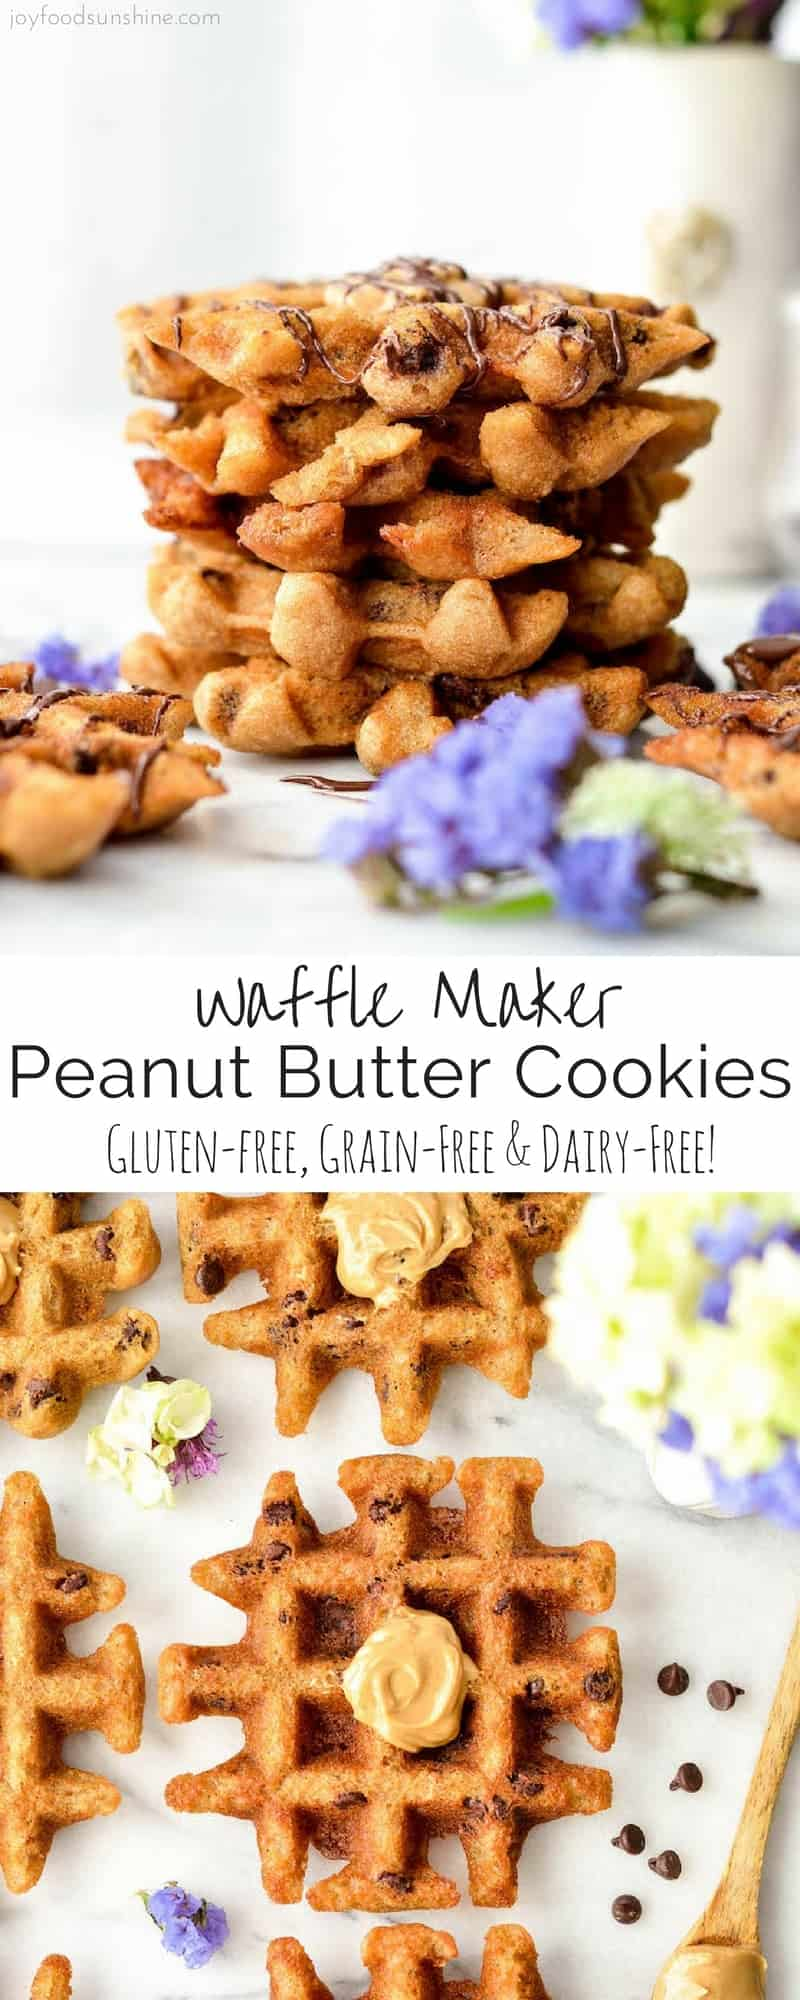 These Waffle Maker Peanut Butter Cookies are gluten-free and ready in 10 minutes! An easy dessert recipe that is healthy enough for breakfast {gluten-free peanut butter waffles}! They taste JUST like a flourless peanut butter cookie but no oven required! They're gluten-free, grain-free, dairy-free and refined sugar free!